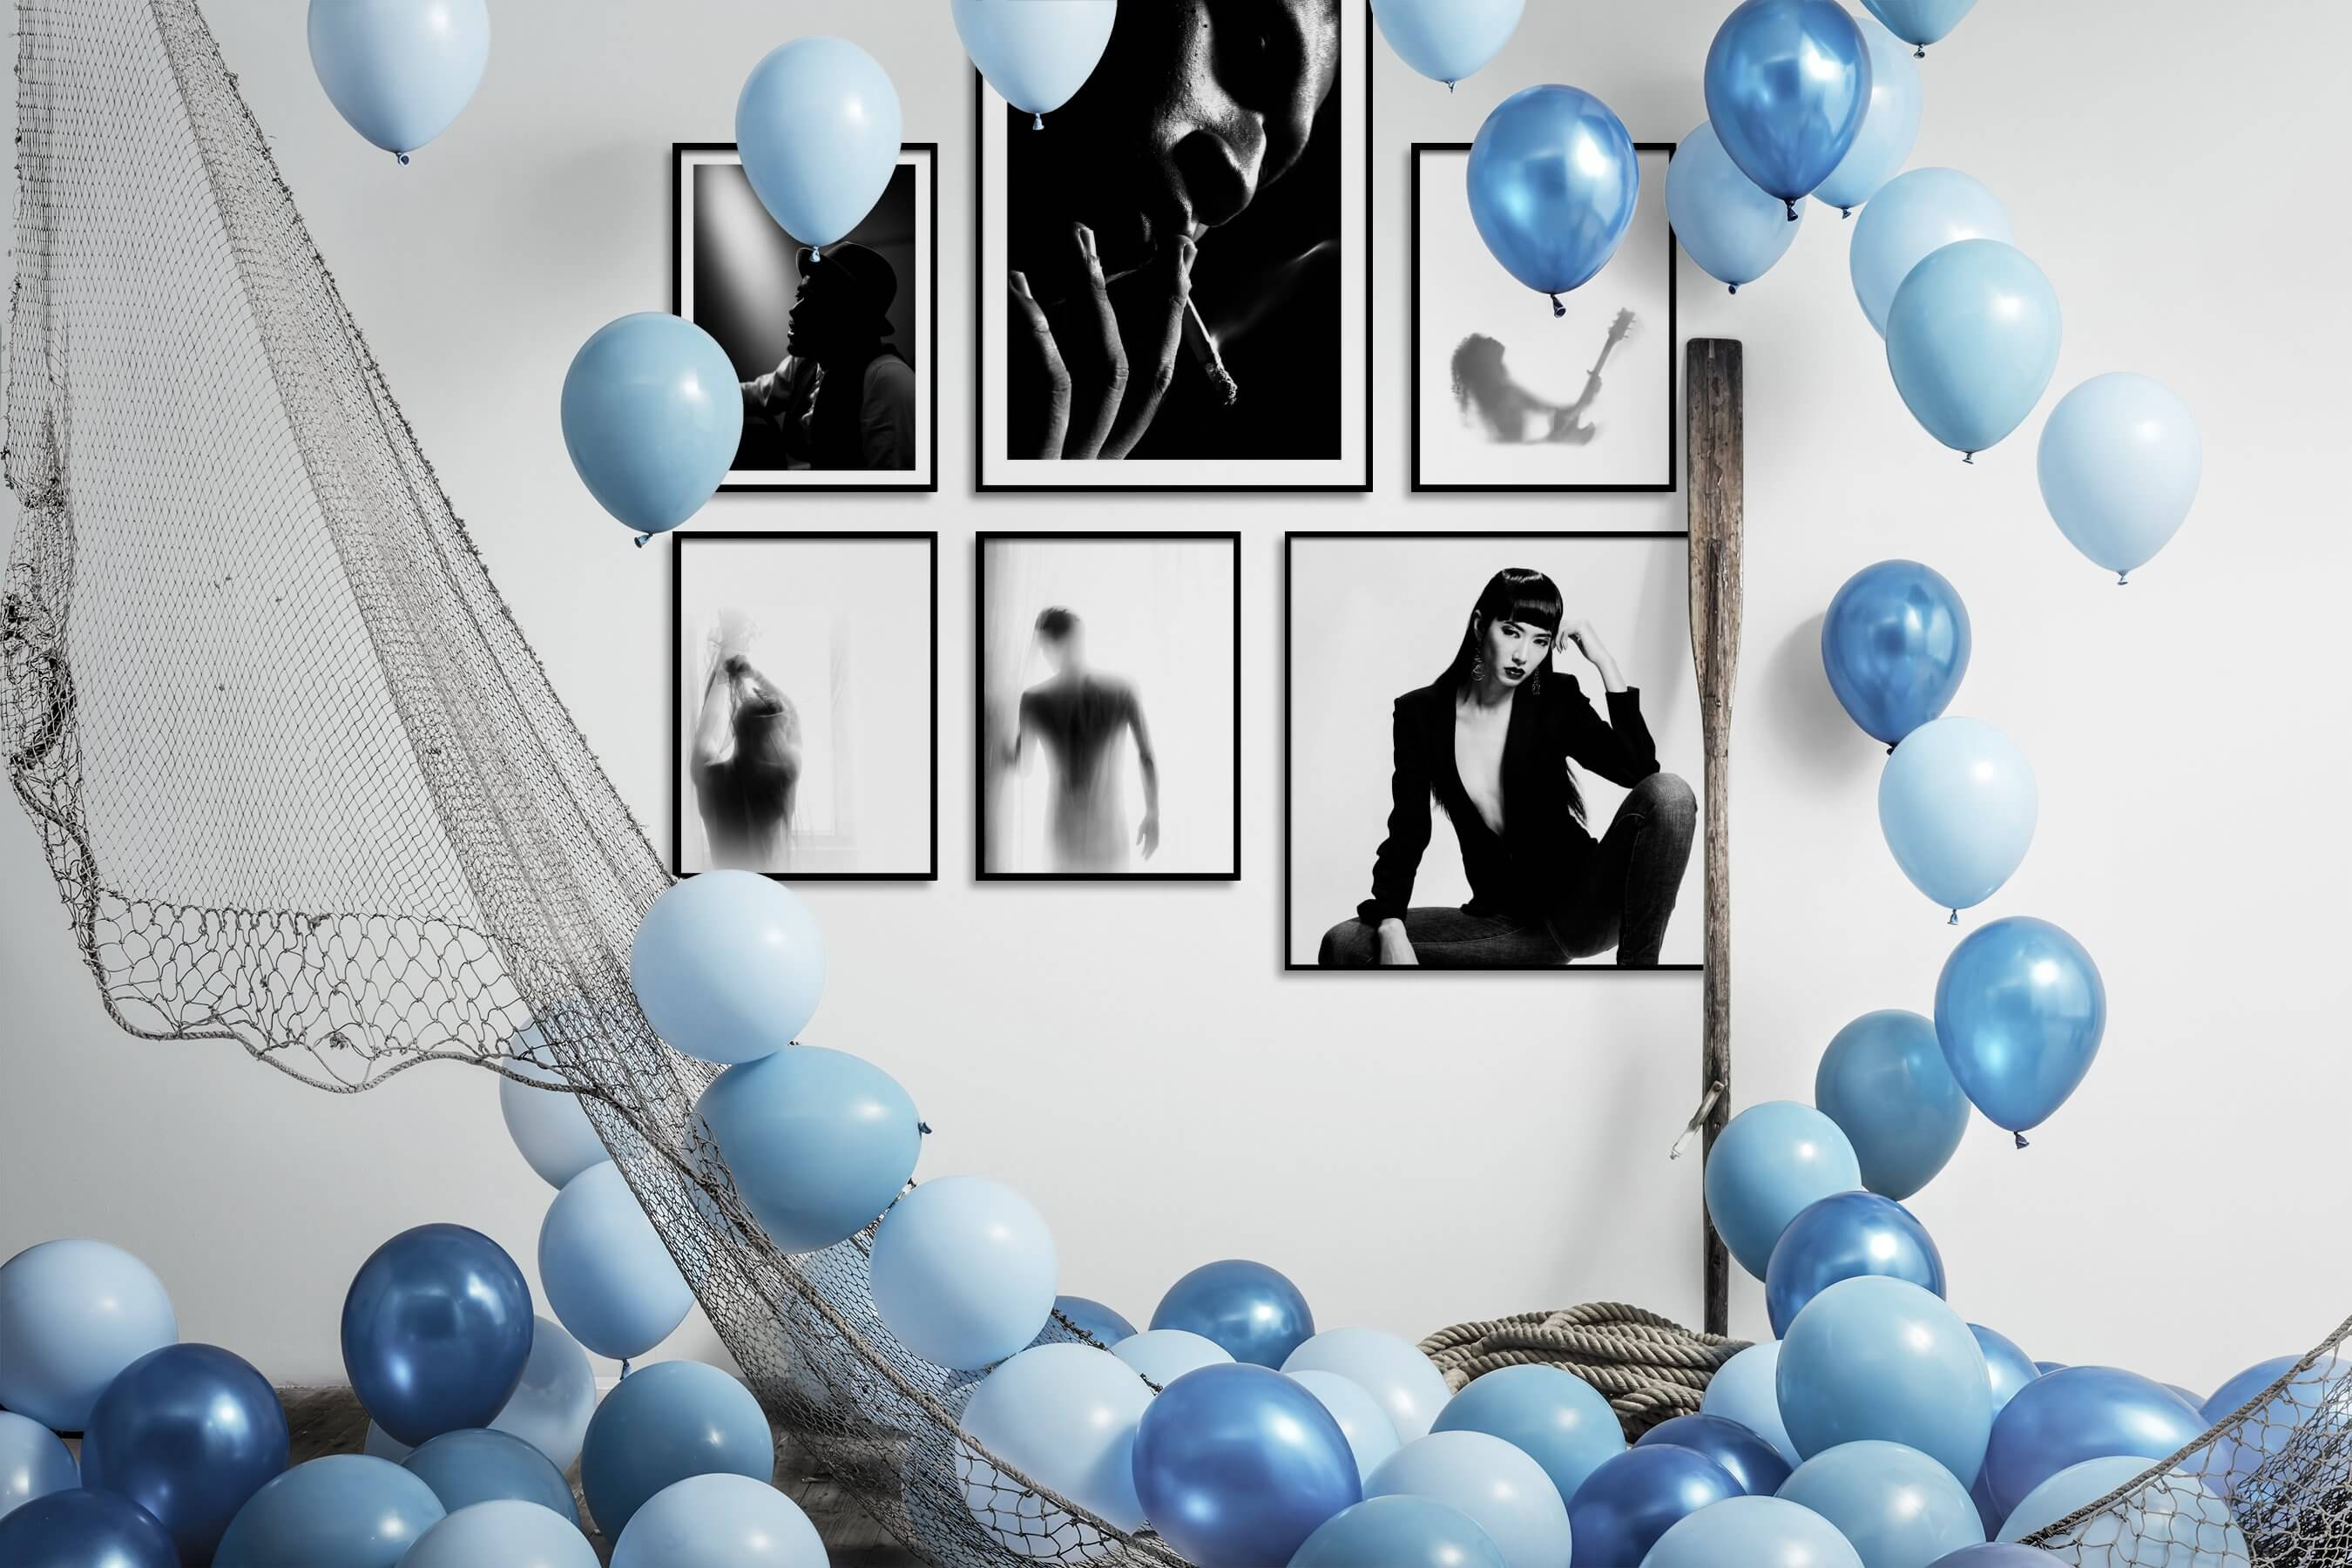 Gallery wall idea with six framed pictures arranged on a wall depicting Fashion & Beauty, Black & White, For the Moderate, Bright Tones, and For the Minimalist